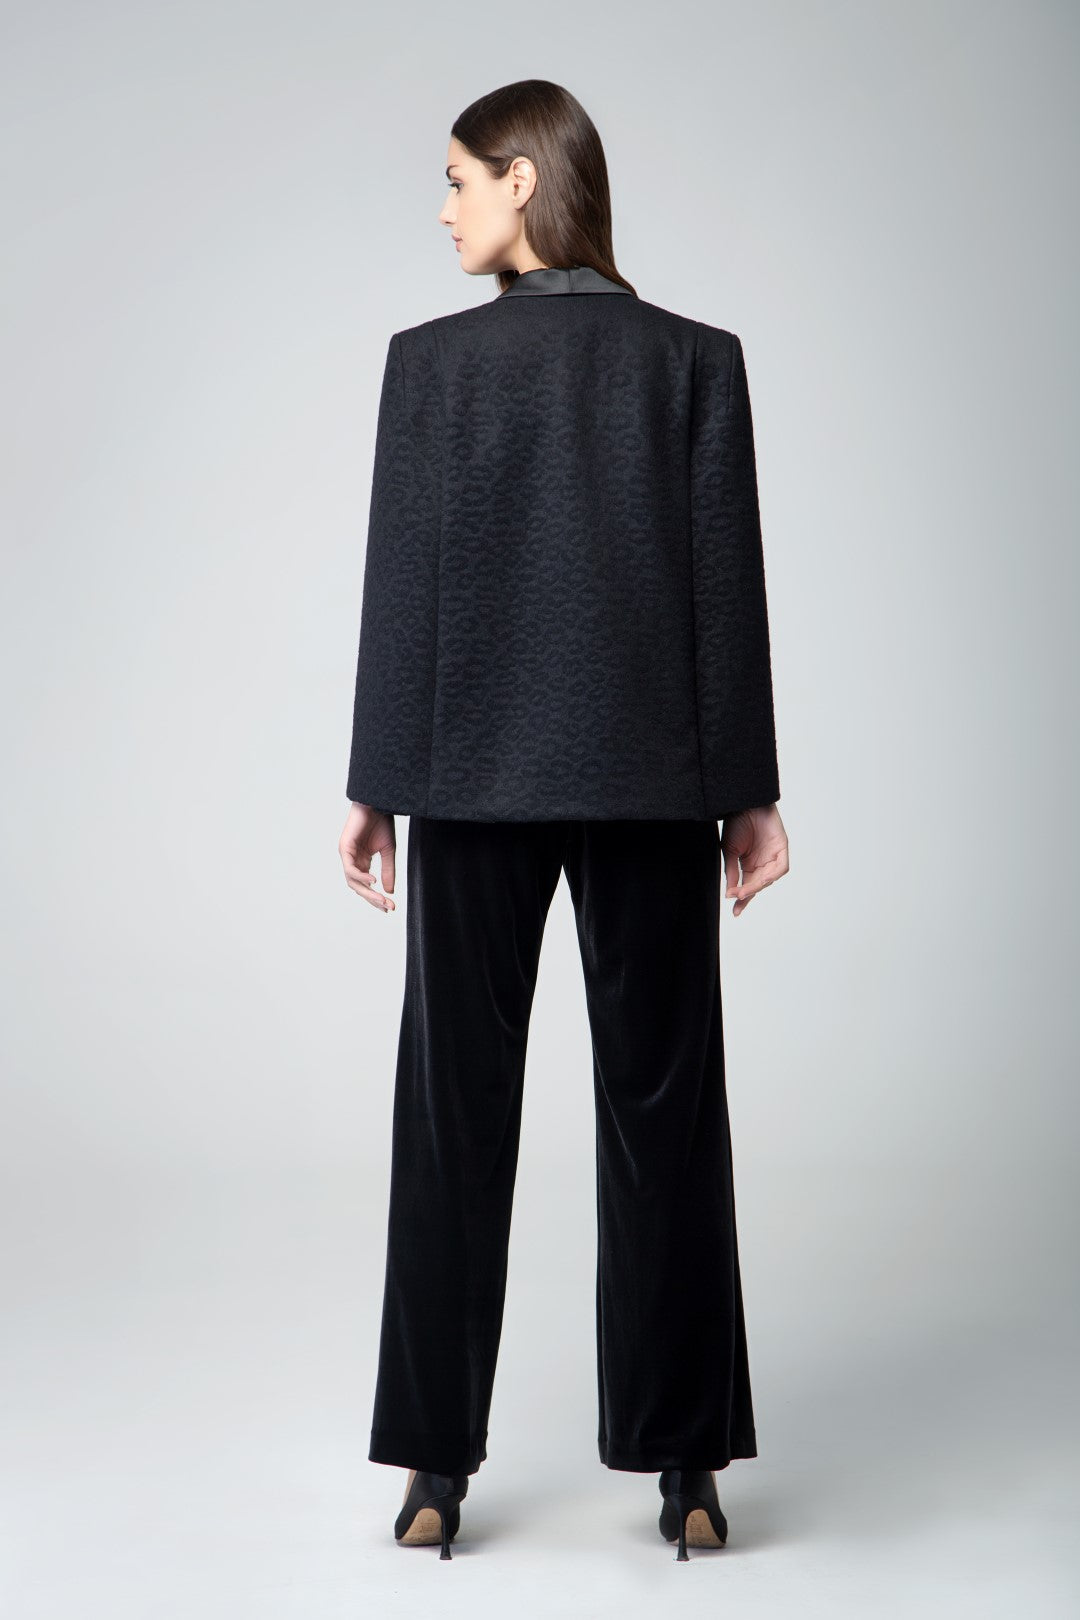 Wool tuxedo-style cape with animal jacquard pattern